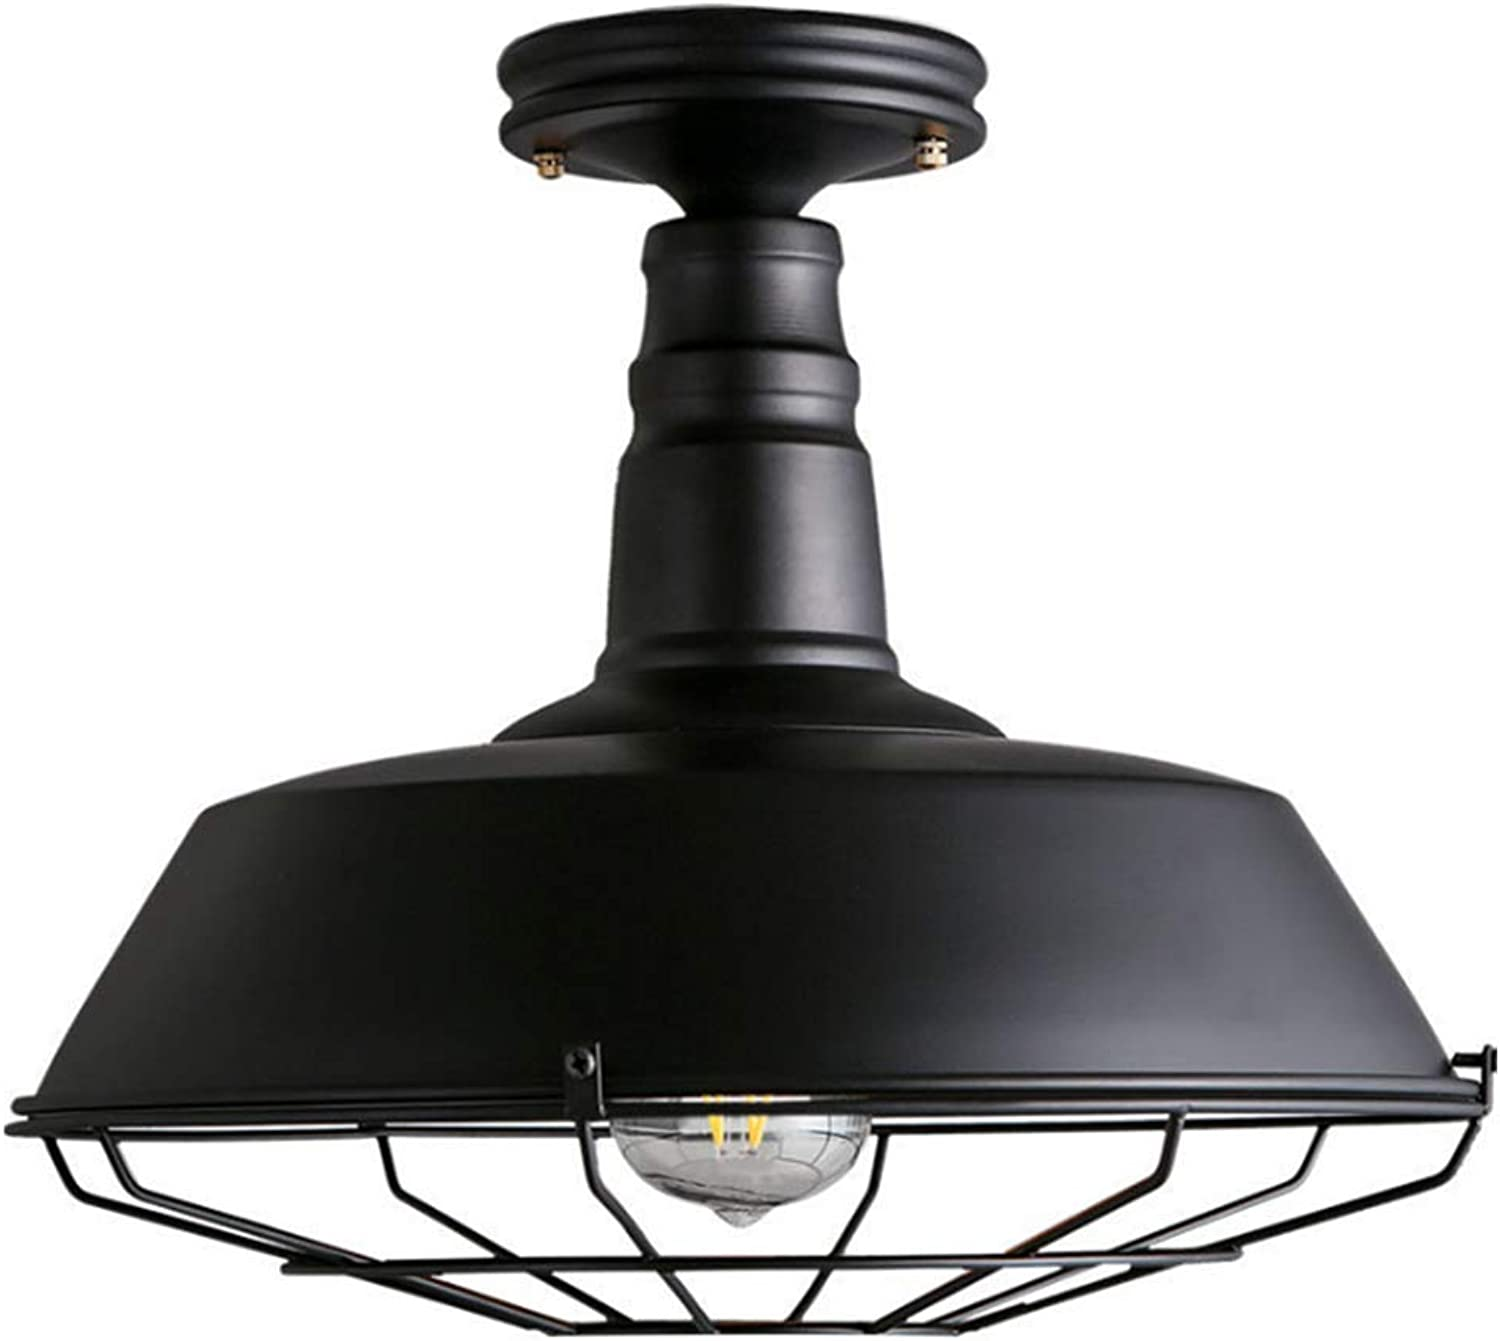 Ladiqi Industrial Rustic Semi Flush Mount Ceiling Light Barn Metal Cage Mounted Pendant Lighting Black Farmhouse Dome Kitchen Lamp Fixture for Foyer Garage Entryway Porch